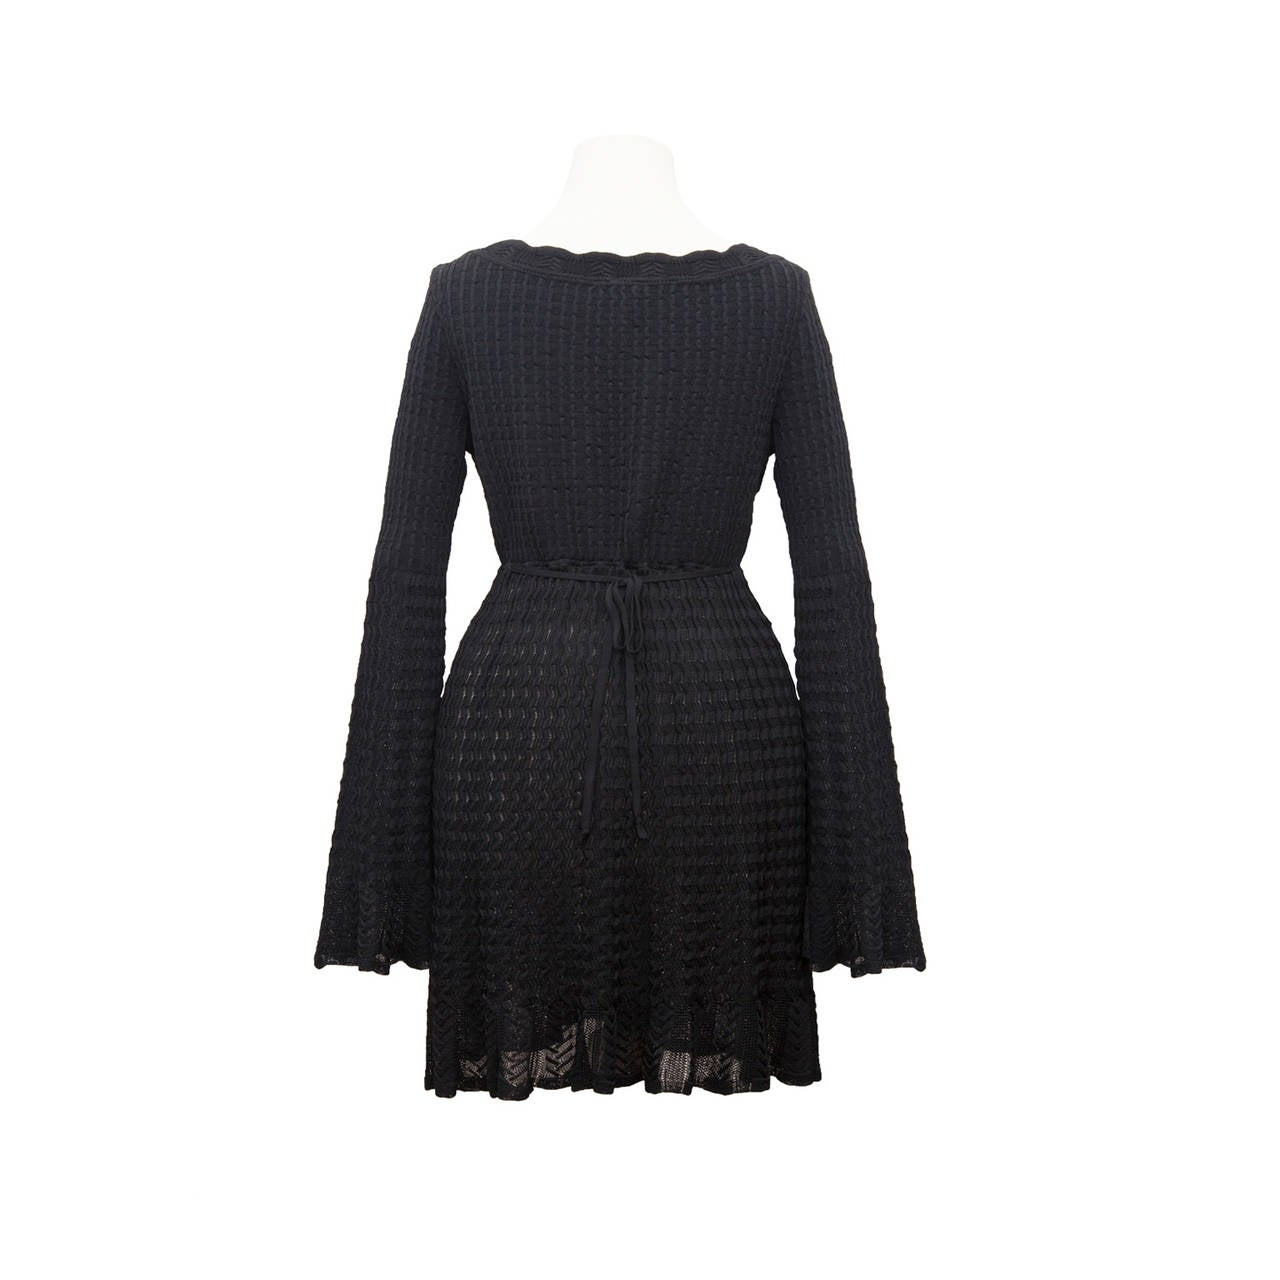 Alaia Black Knit Top Dress 1992 2